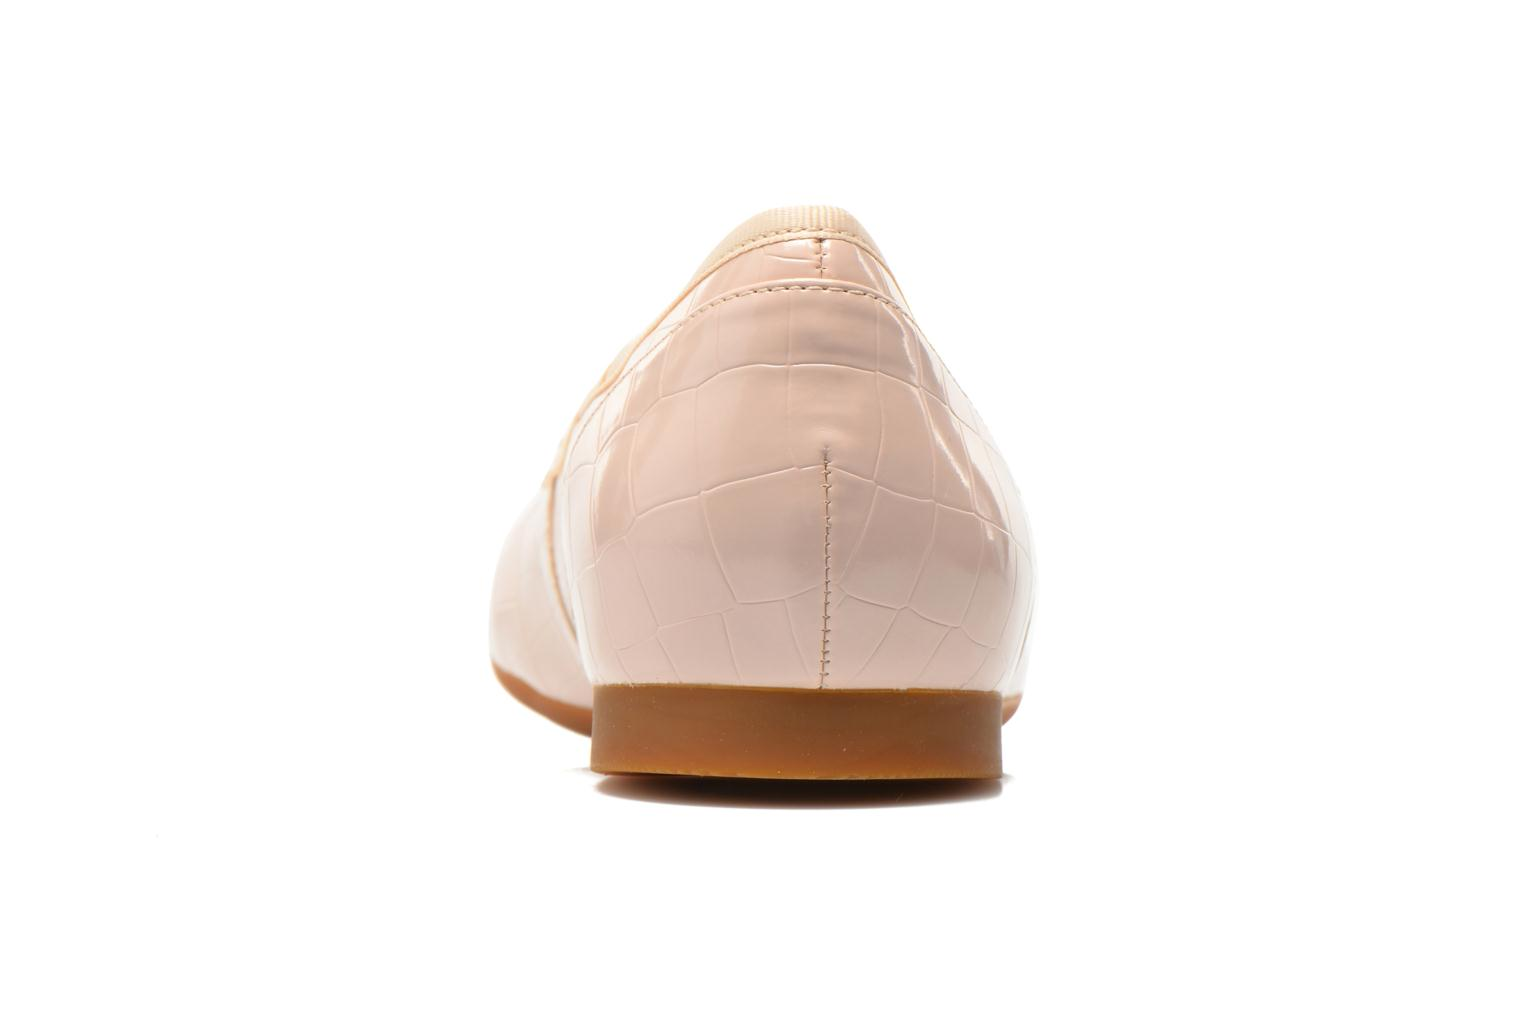 Couture Bloom Nude pink Croc